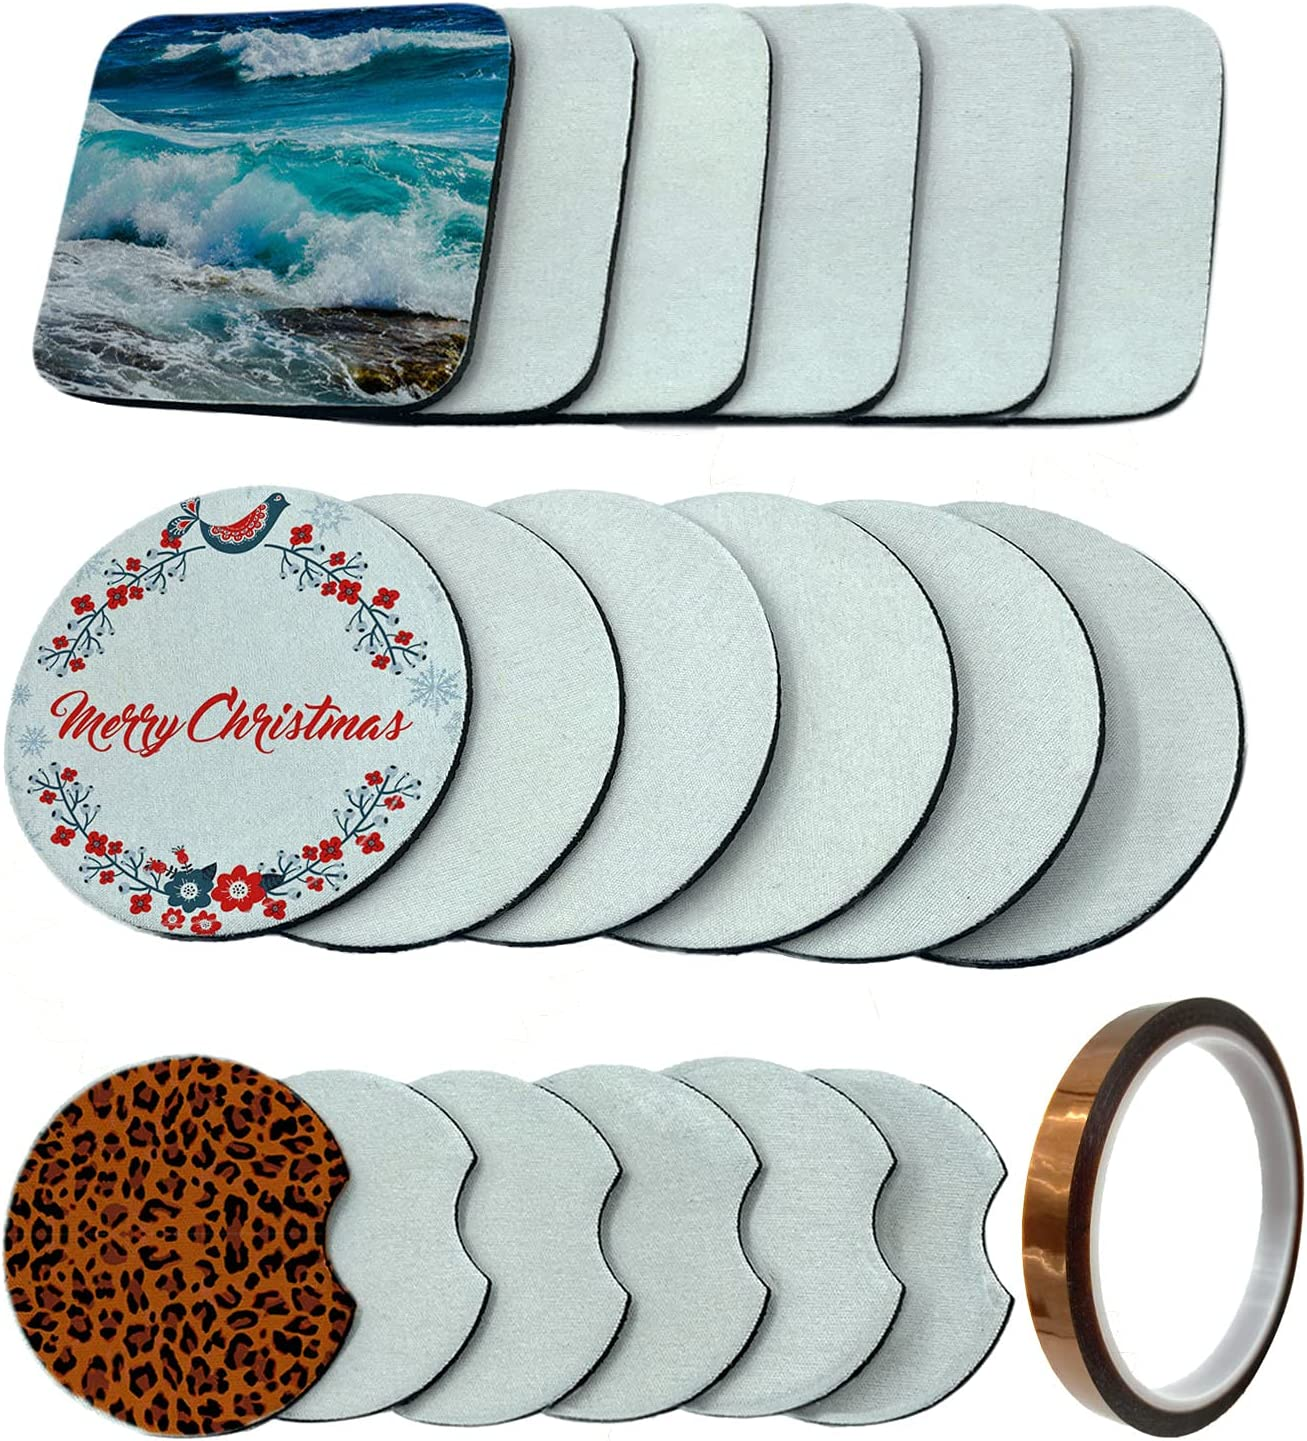 18+1 Sublimation Coasters Ranking TOP15 Sale item Products Blanks In